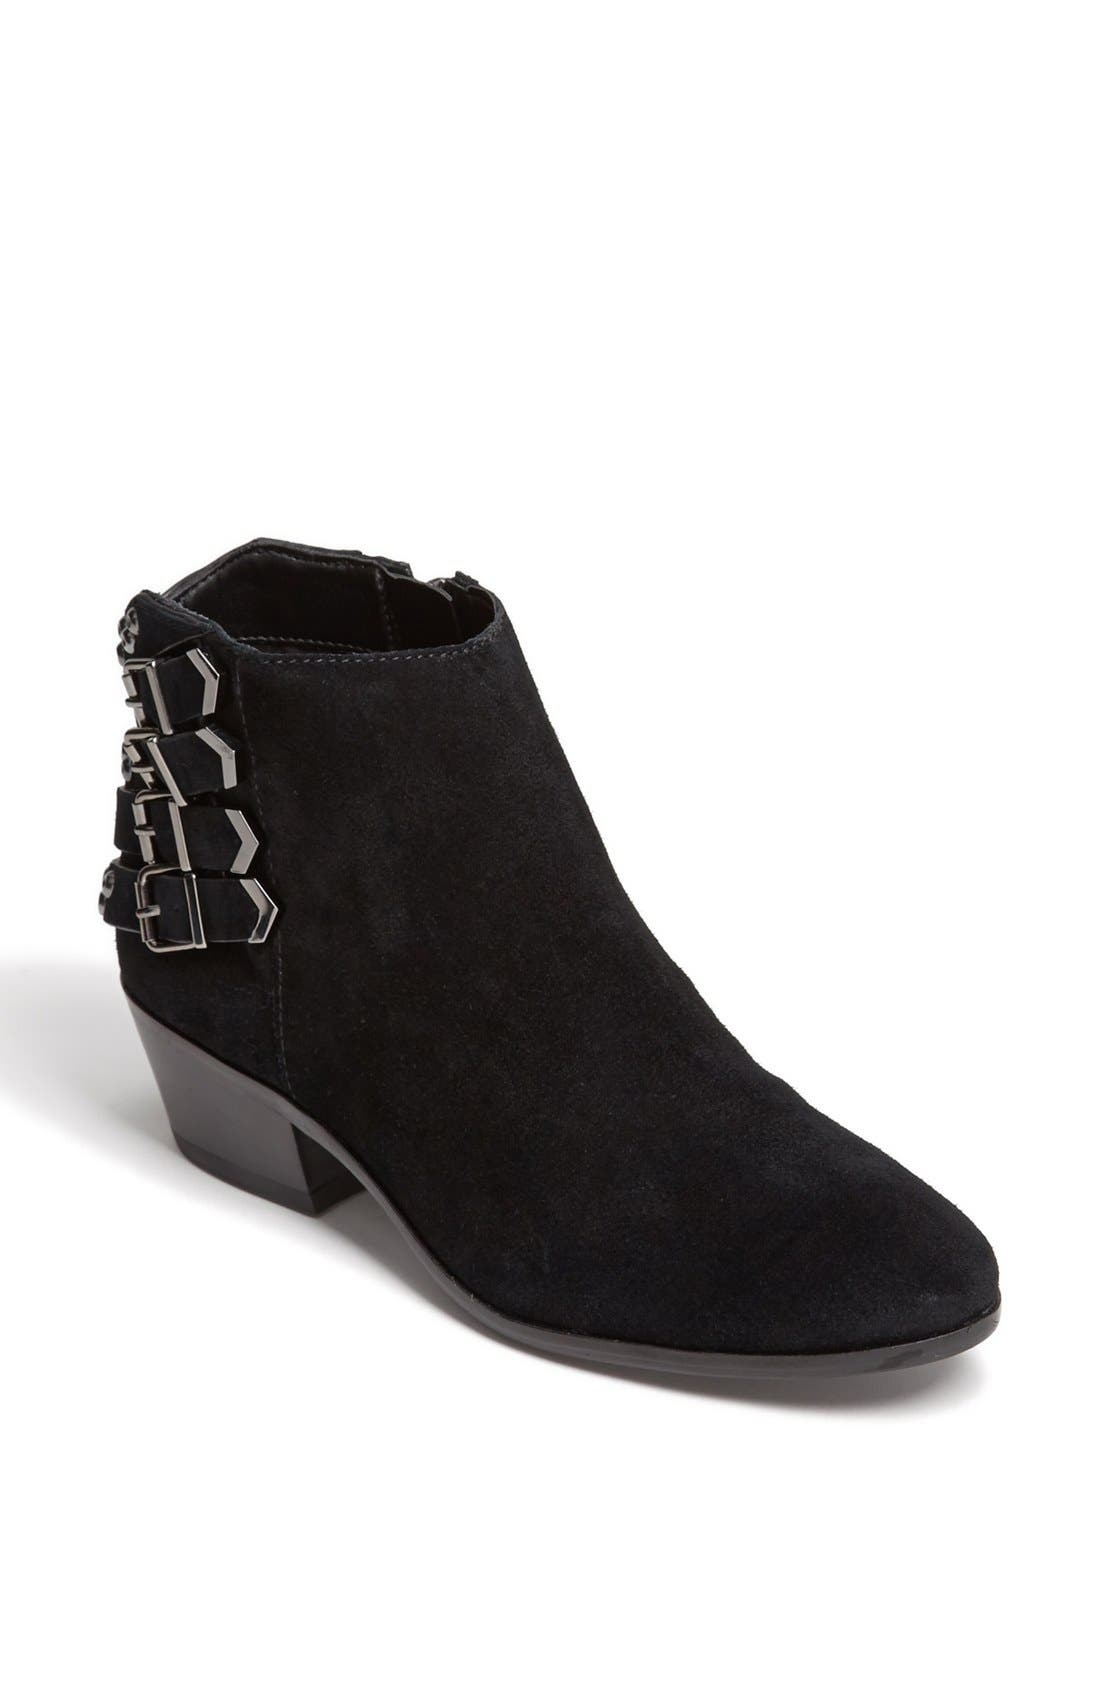 Alternate Image 1 Selected - Sam Edelman 'Penrose' Bootie